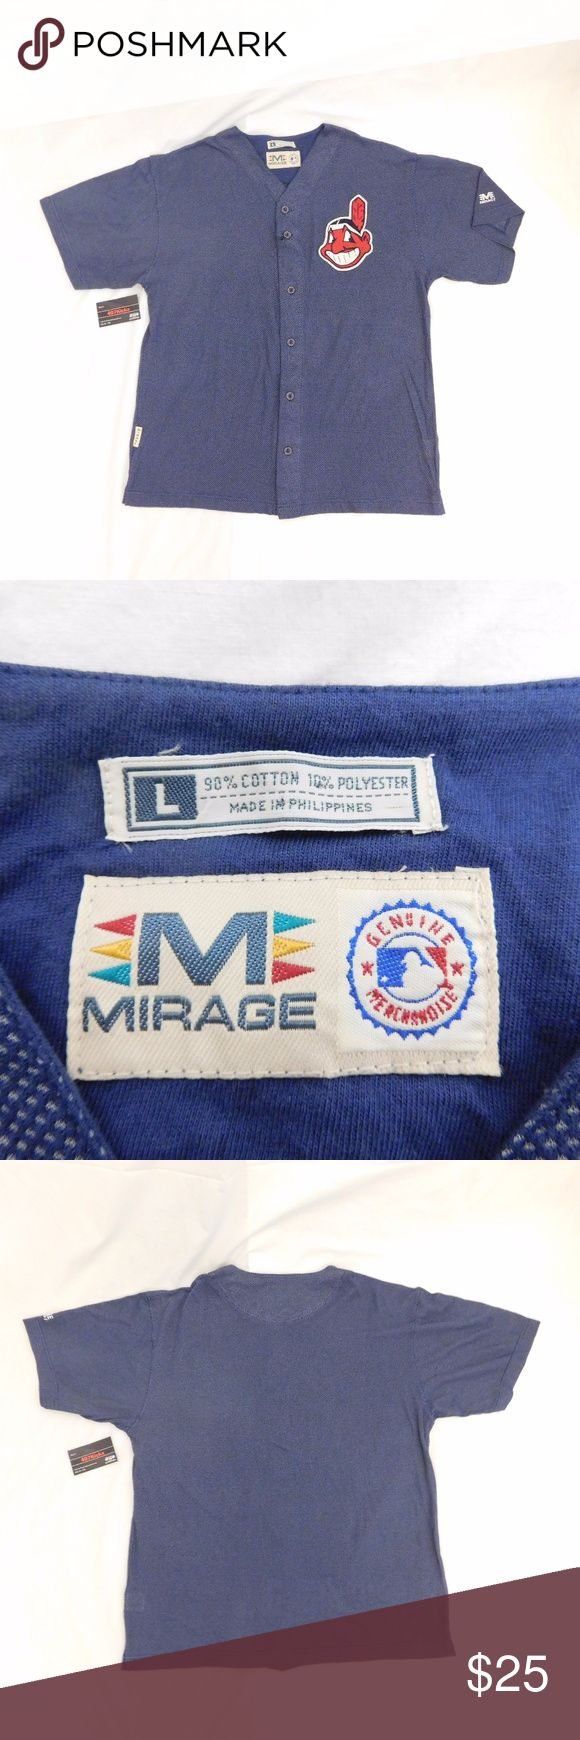 VTG Mirage MLB Indians Baseball Jersey Large USED Vintage Mirage MLB Genuine Merchandise Cleveland Indians Button Front Blue Stitched Logo Baseball Jersey | MENS size Large | Great condition, no flaws  For Discounts Follow Me on Instagram @407vintage !  KEYWORDS/TAGS: ultra boost , Tommy Hilfiger , Polo Sport , Nautica , NMD , supreme , kith , bred , adidas , banned , french blue , stussy , Maestro , vintage , kaws , solefly , trophy room , box logo , gamma blue , retro jordan , steal…